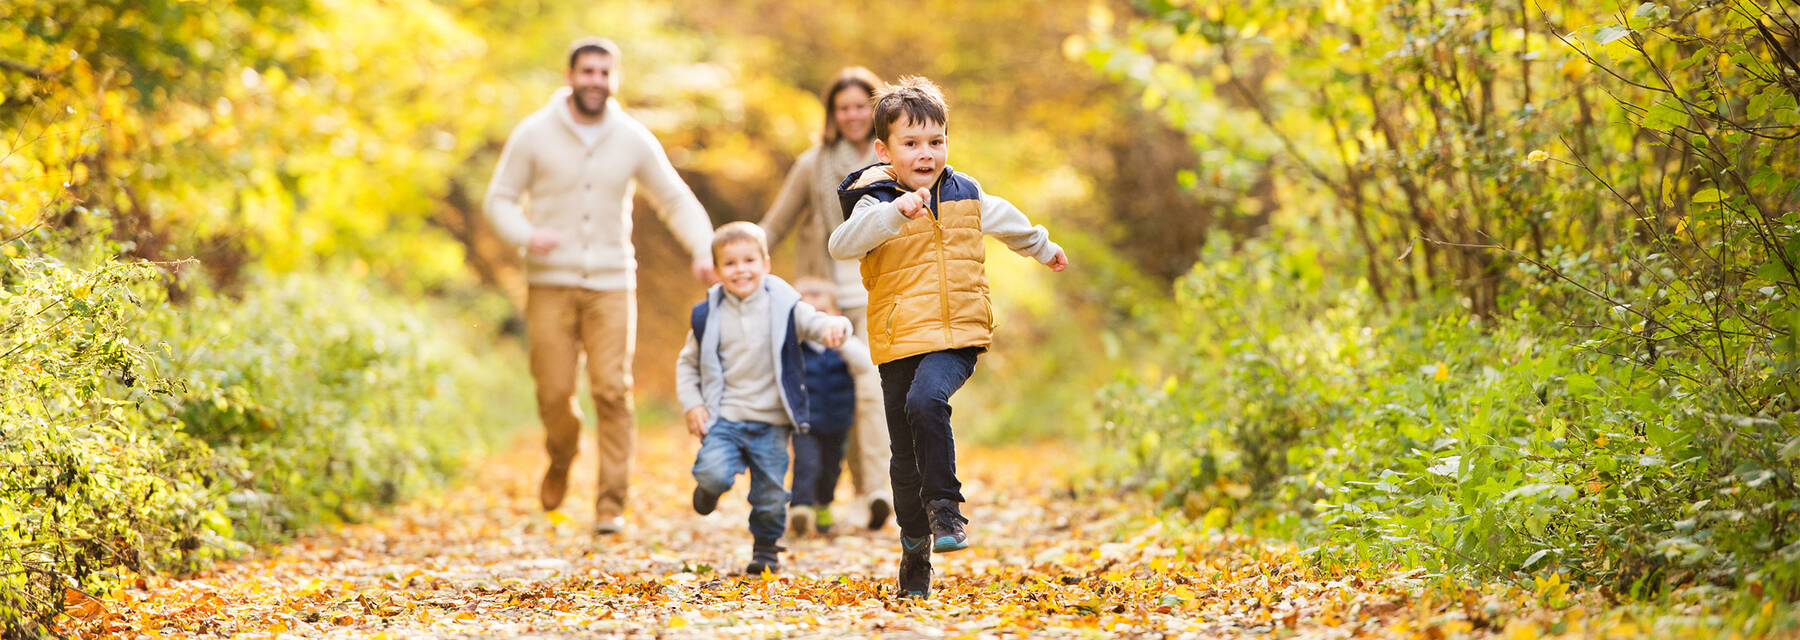 A family running through a woodland in autumn